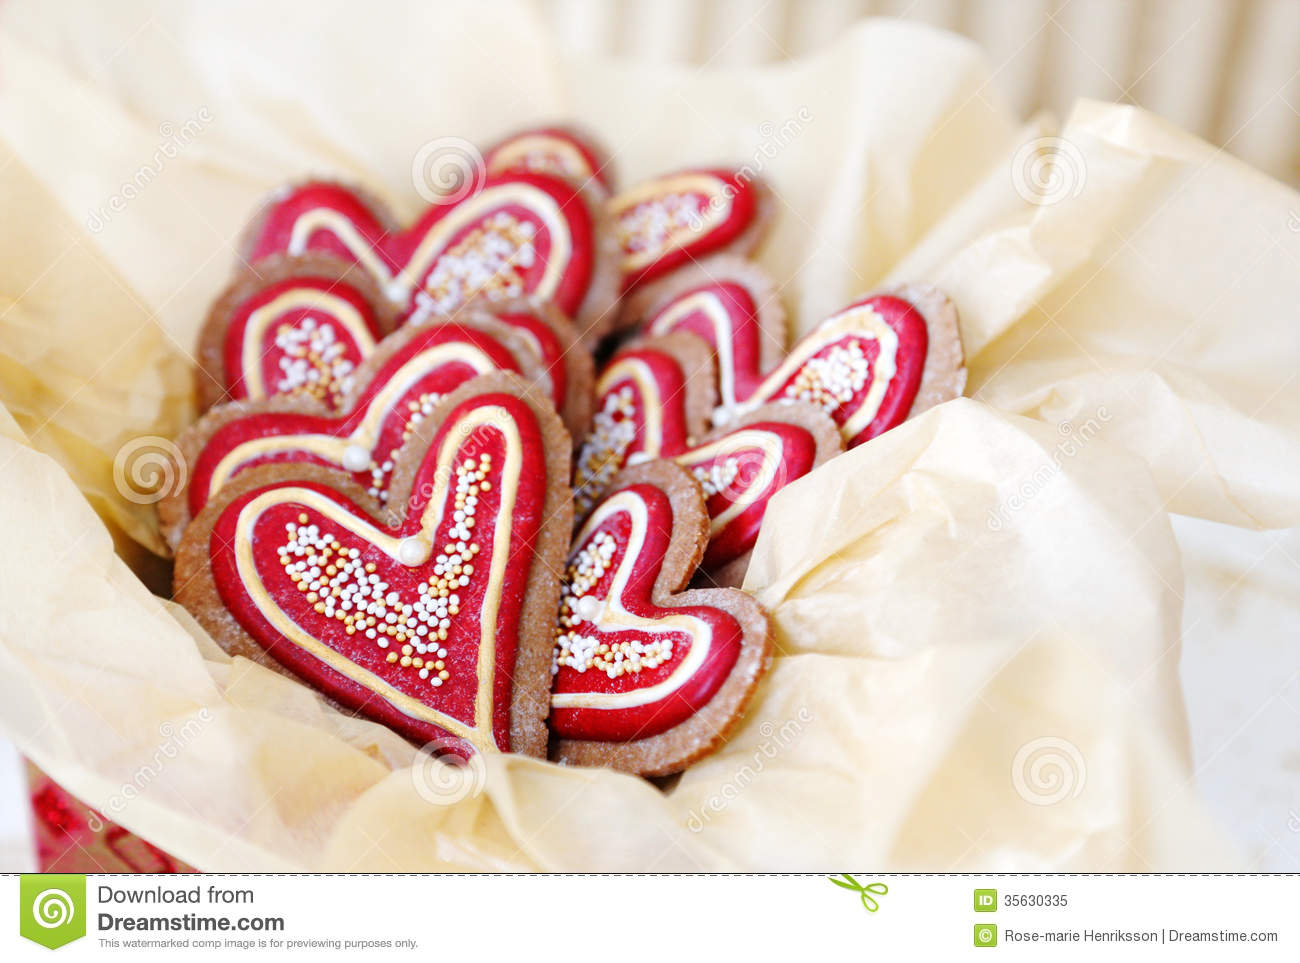 Heart shaped gingerbread cookies decorated in red and gold